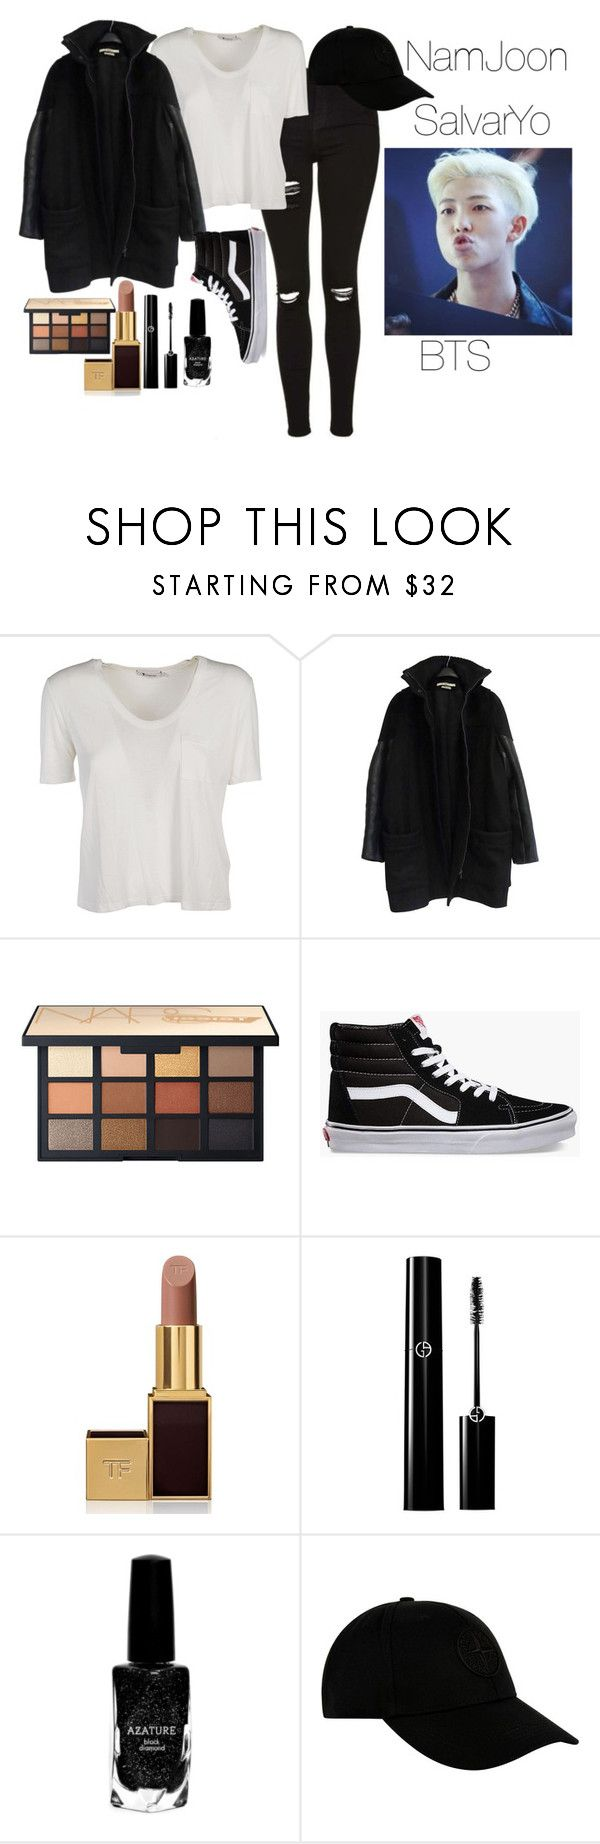 """sAVE ME"" by amor-de-pandicornios on Polyvore featuring Alexander Wang, Givenchy, Vans, Tom Ford, Azature and STONE ISLAND"